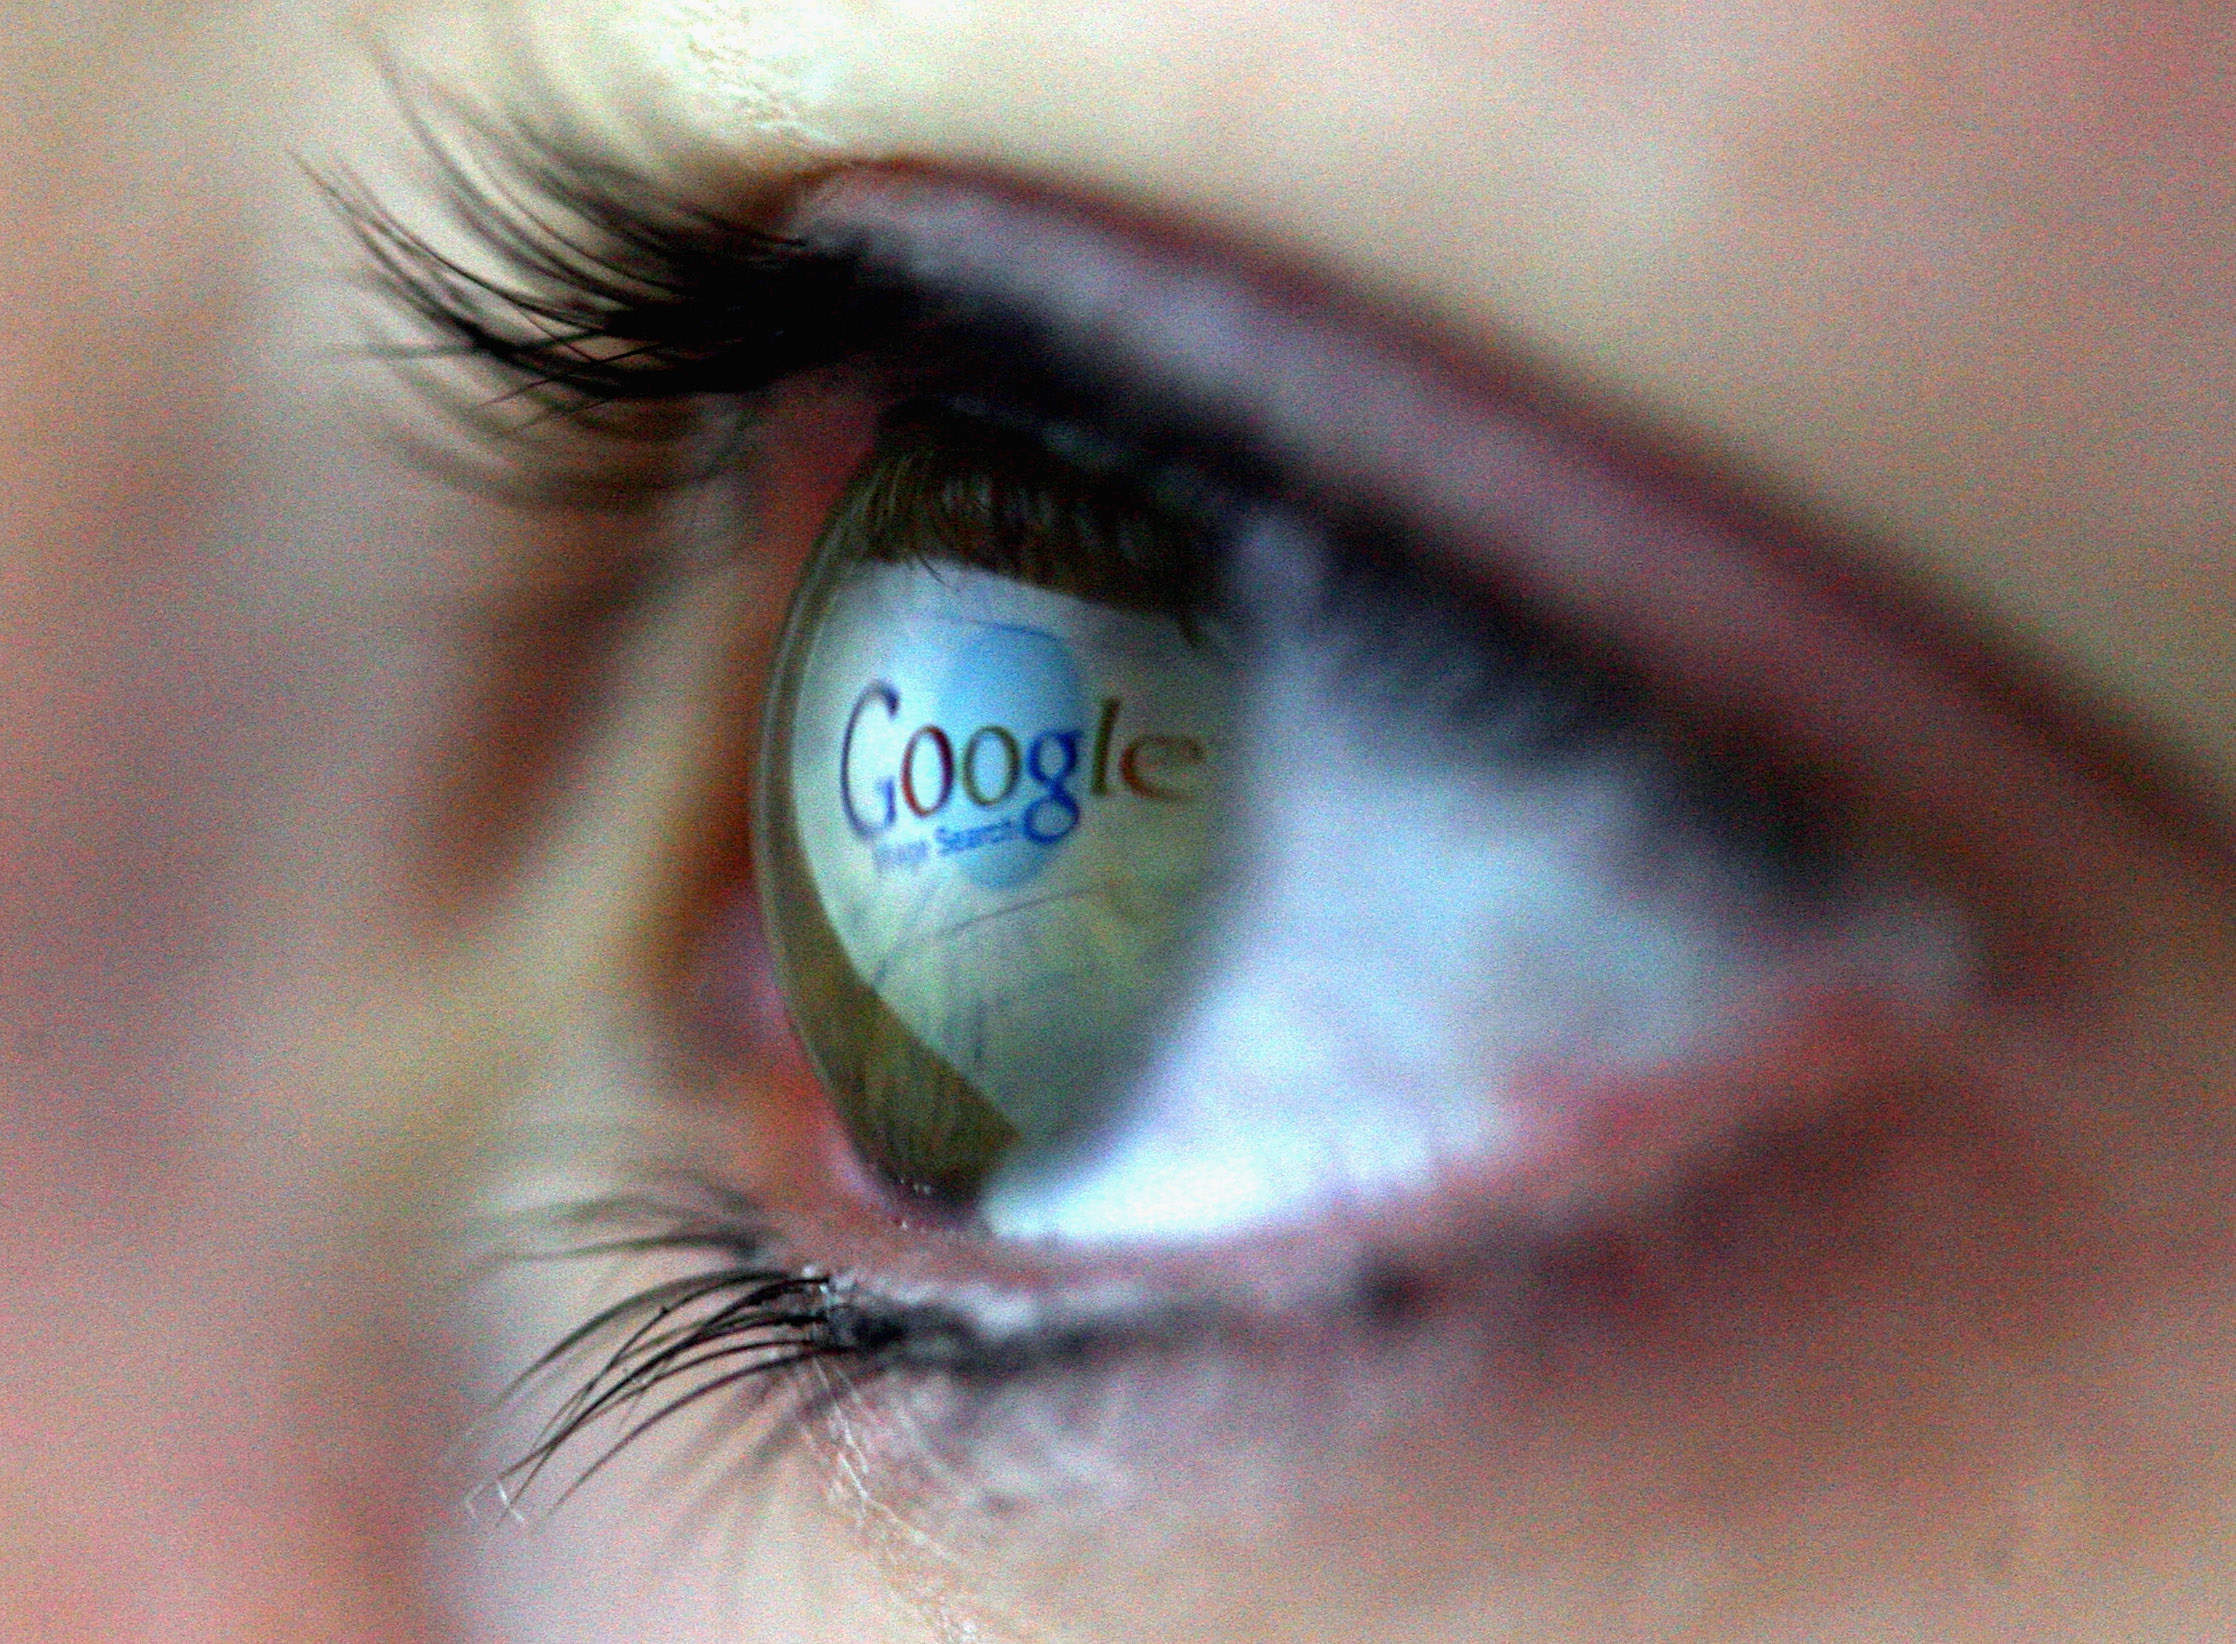 How to stop the tech giants turning us into techo-serfs